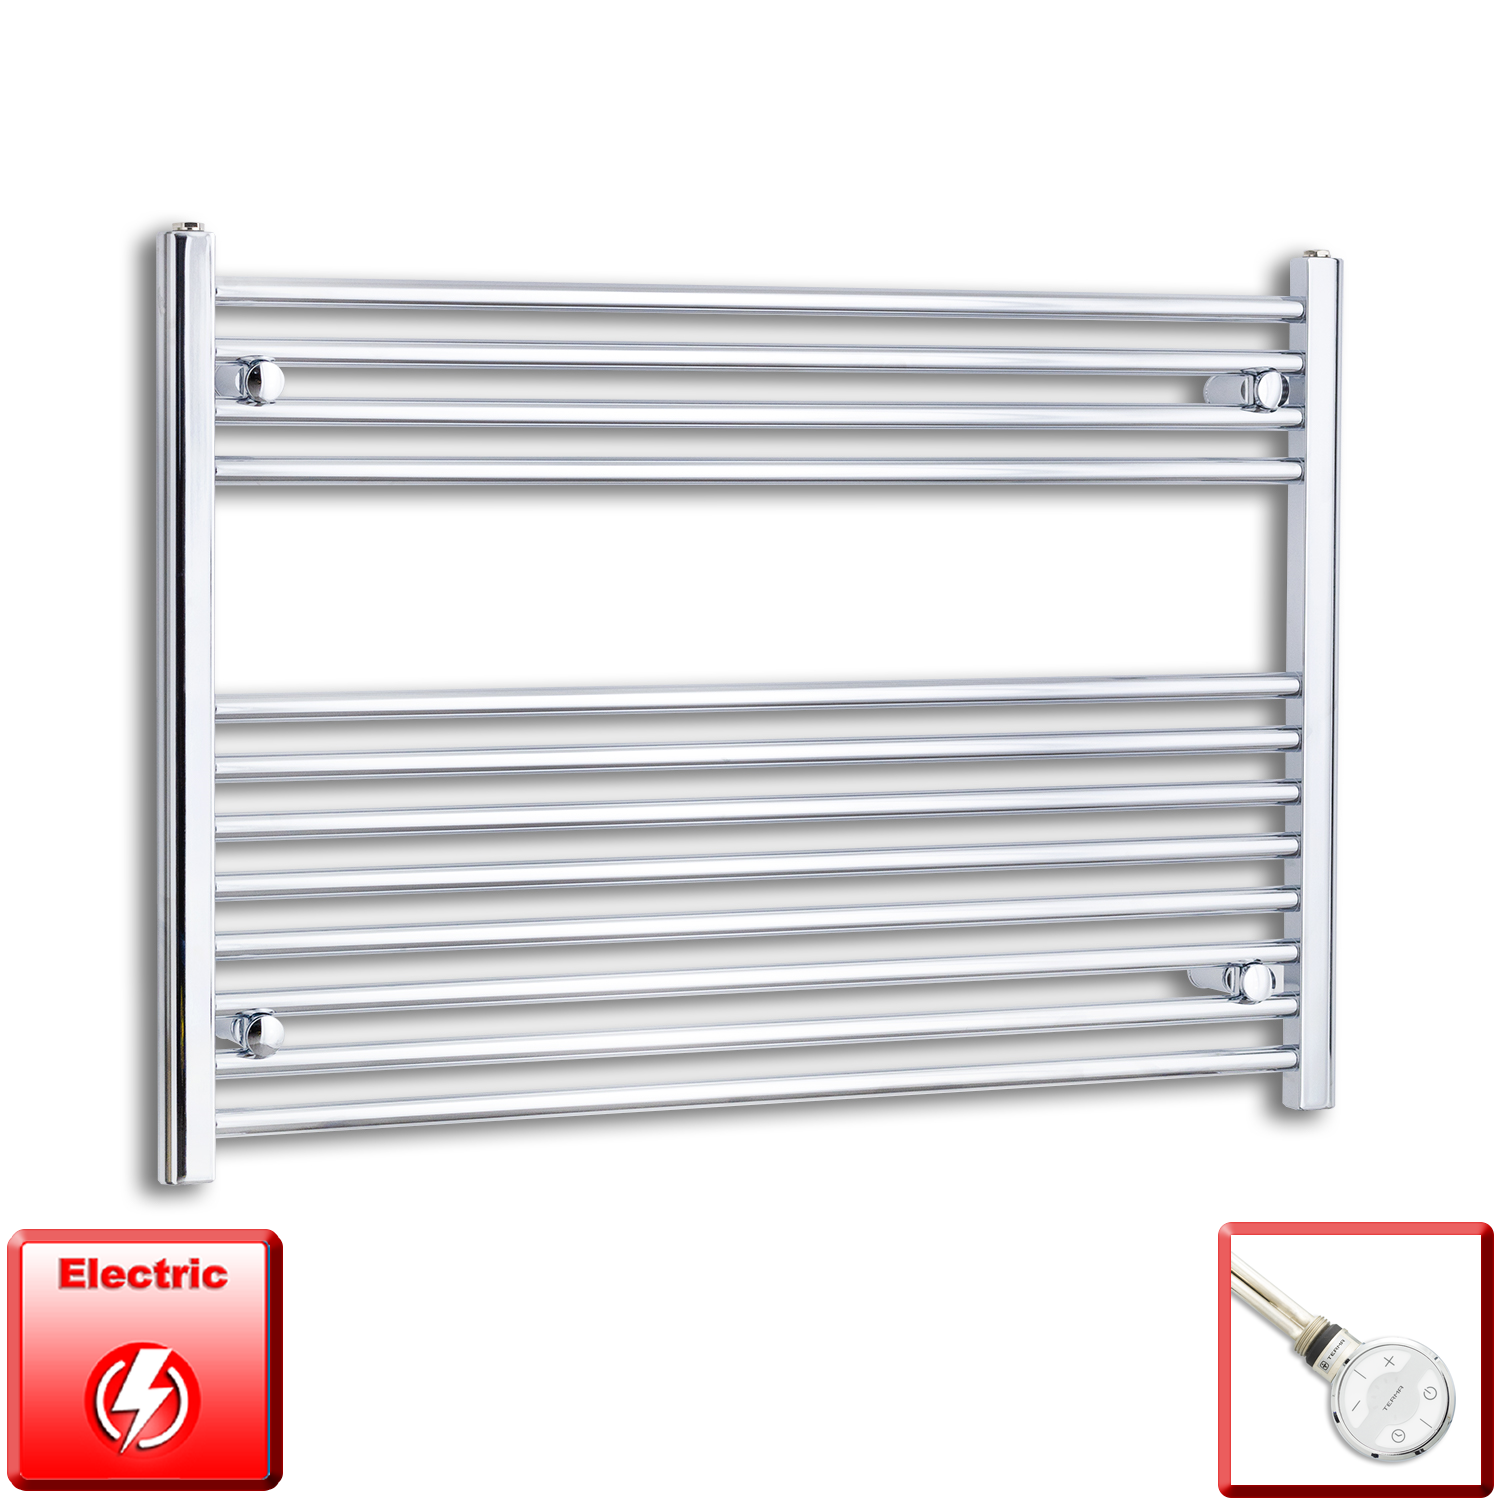 1000mm Wide 700mm High Flat Chrome Pre-Filled Electric Heated Towel Rail Radiator HTR,MOA Thermostatic Element